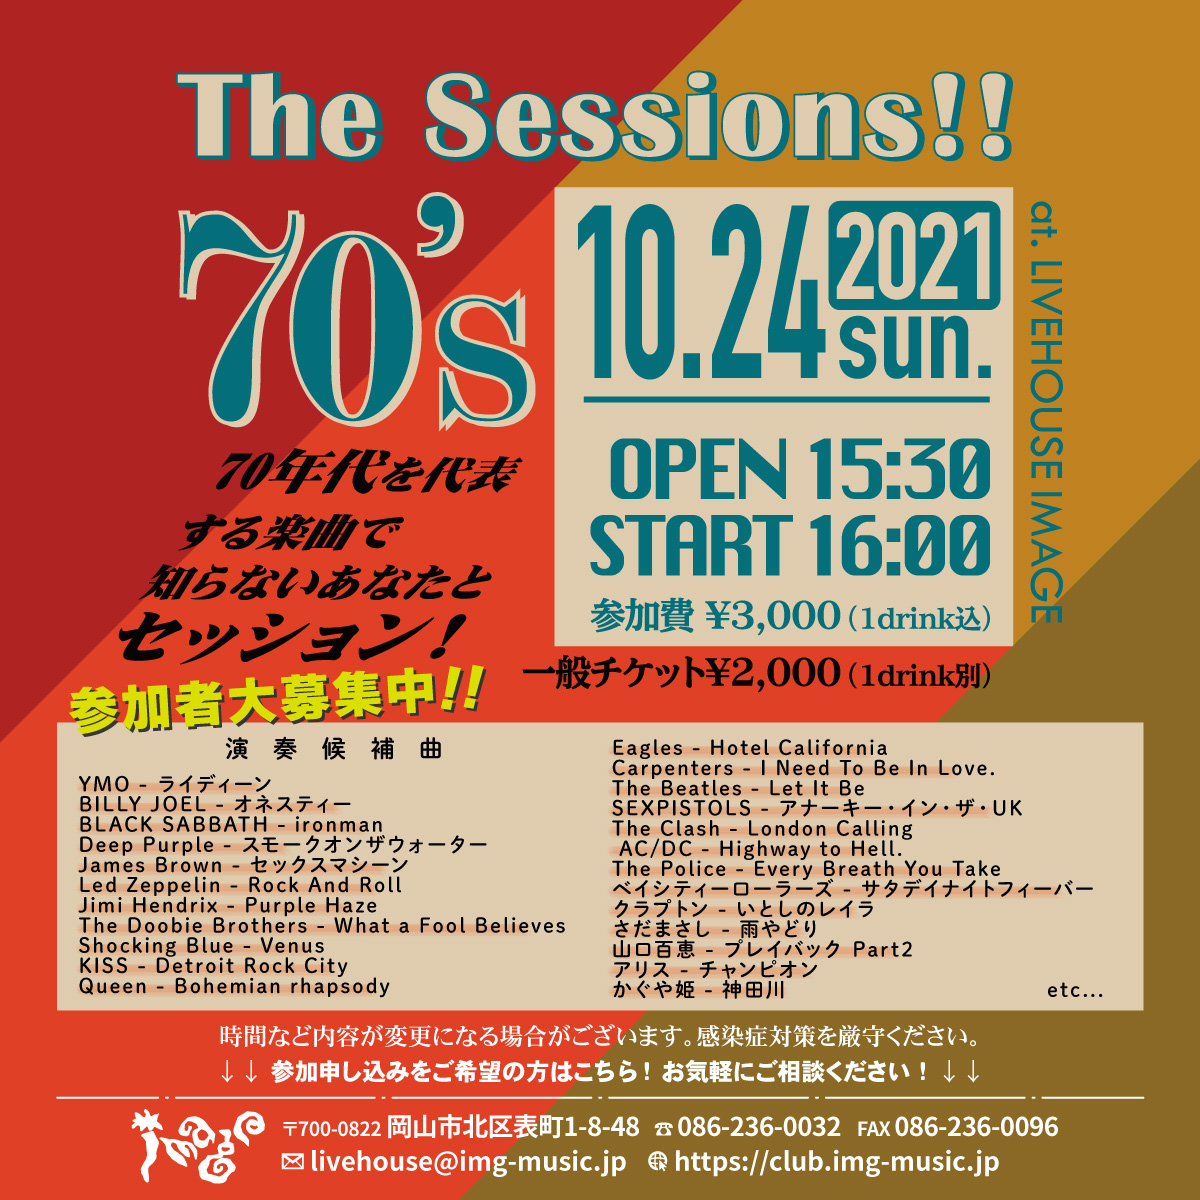 The Sessions!! 70's